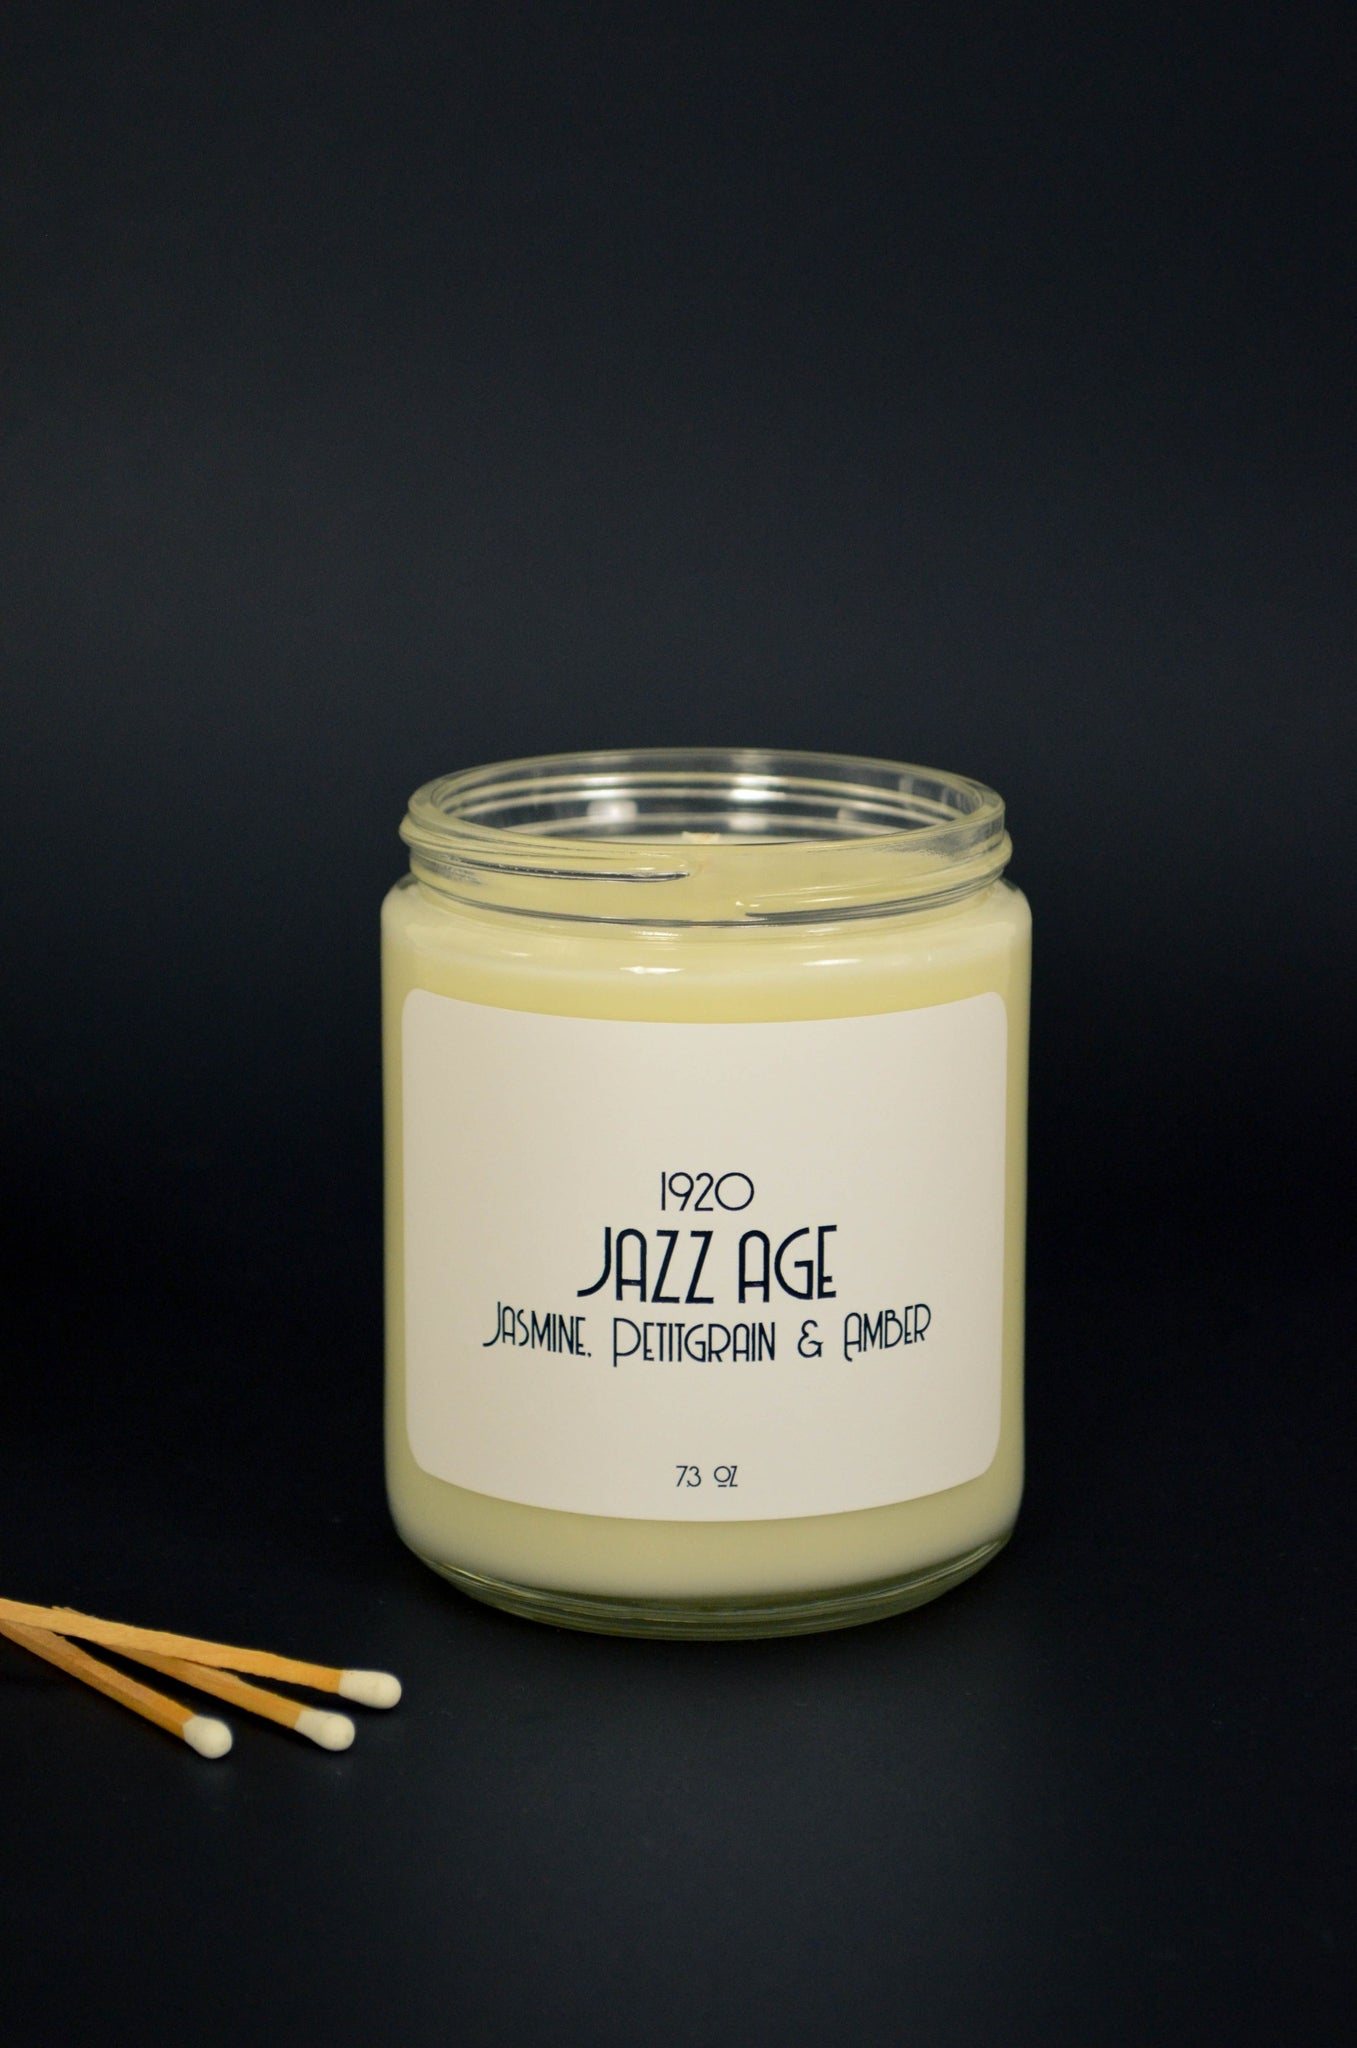 Jazz Age Scented Soy Candle 7.2 oz